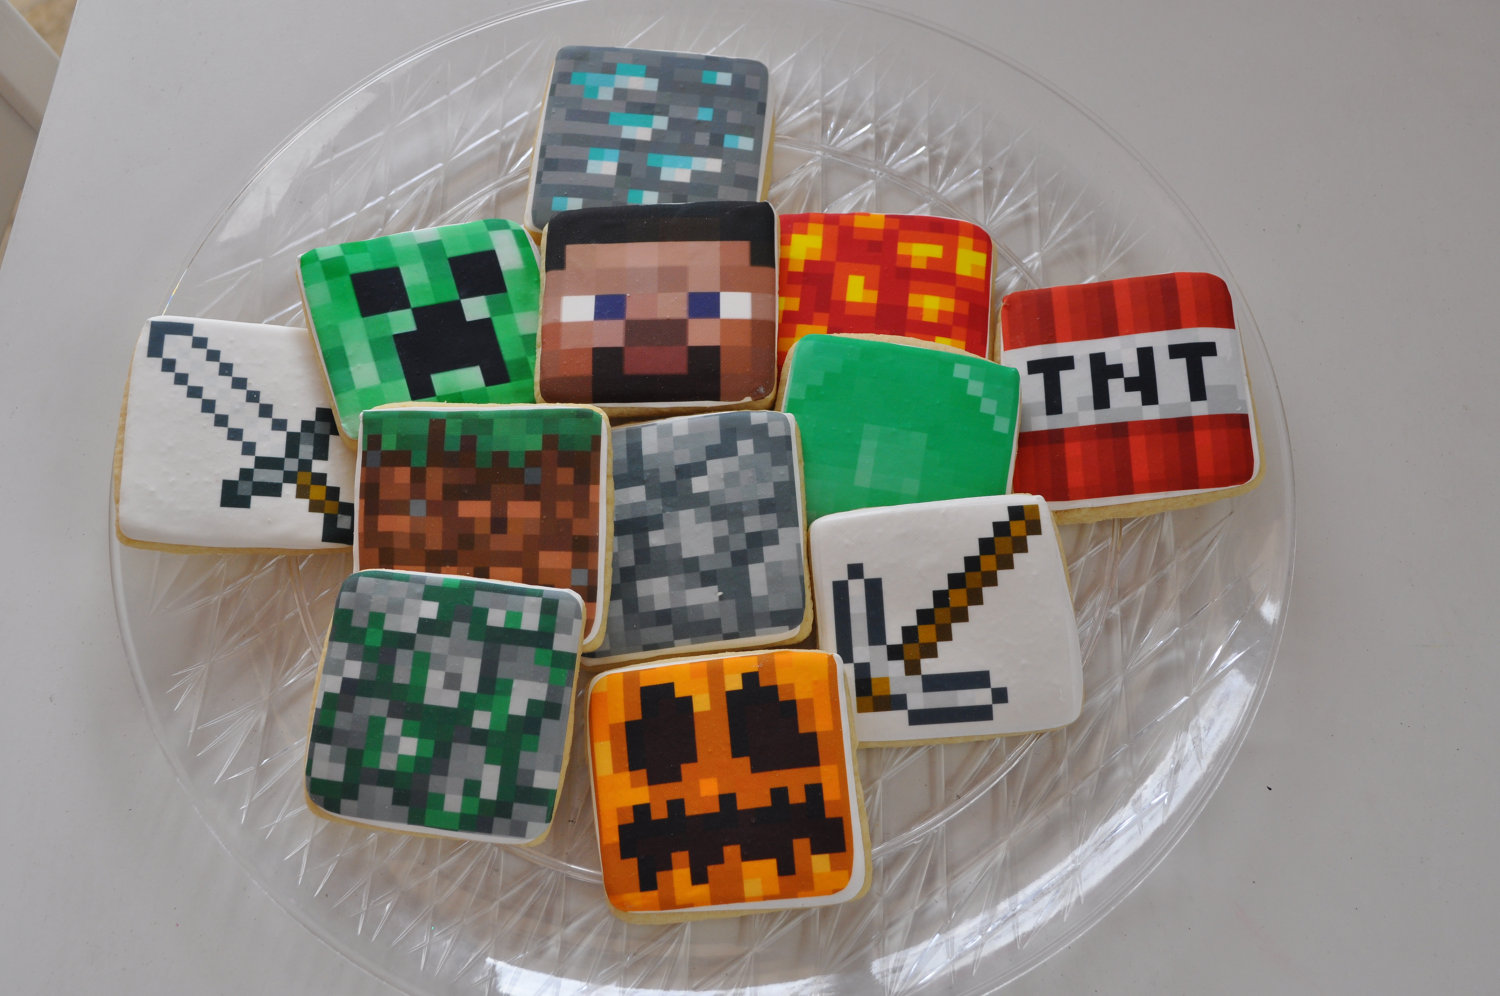 How To Craft Coal In Minecraft